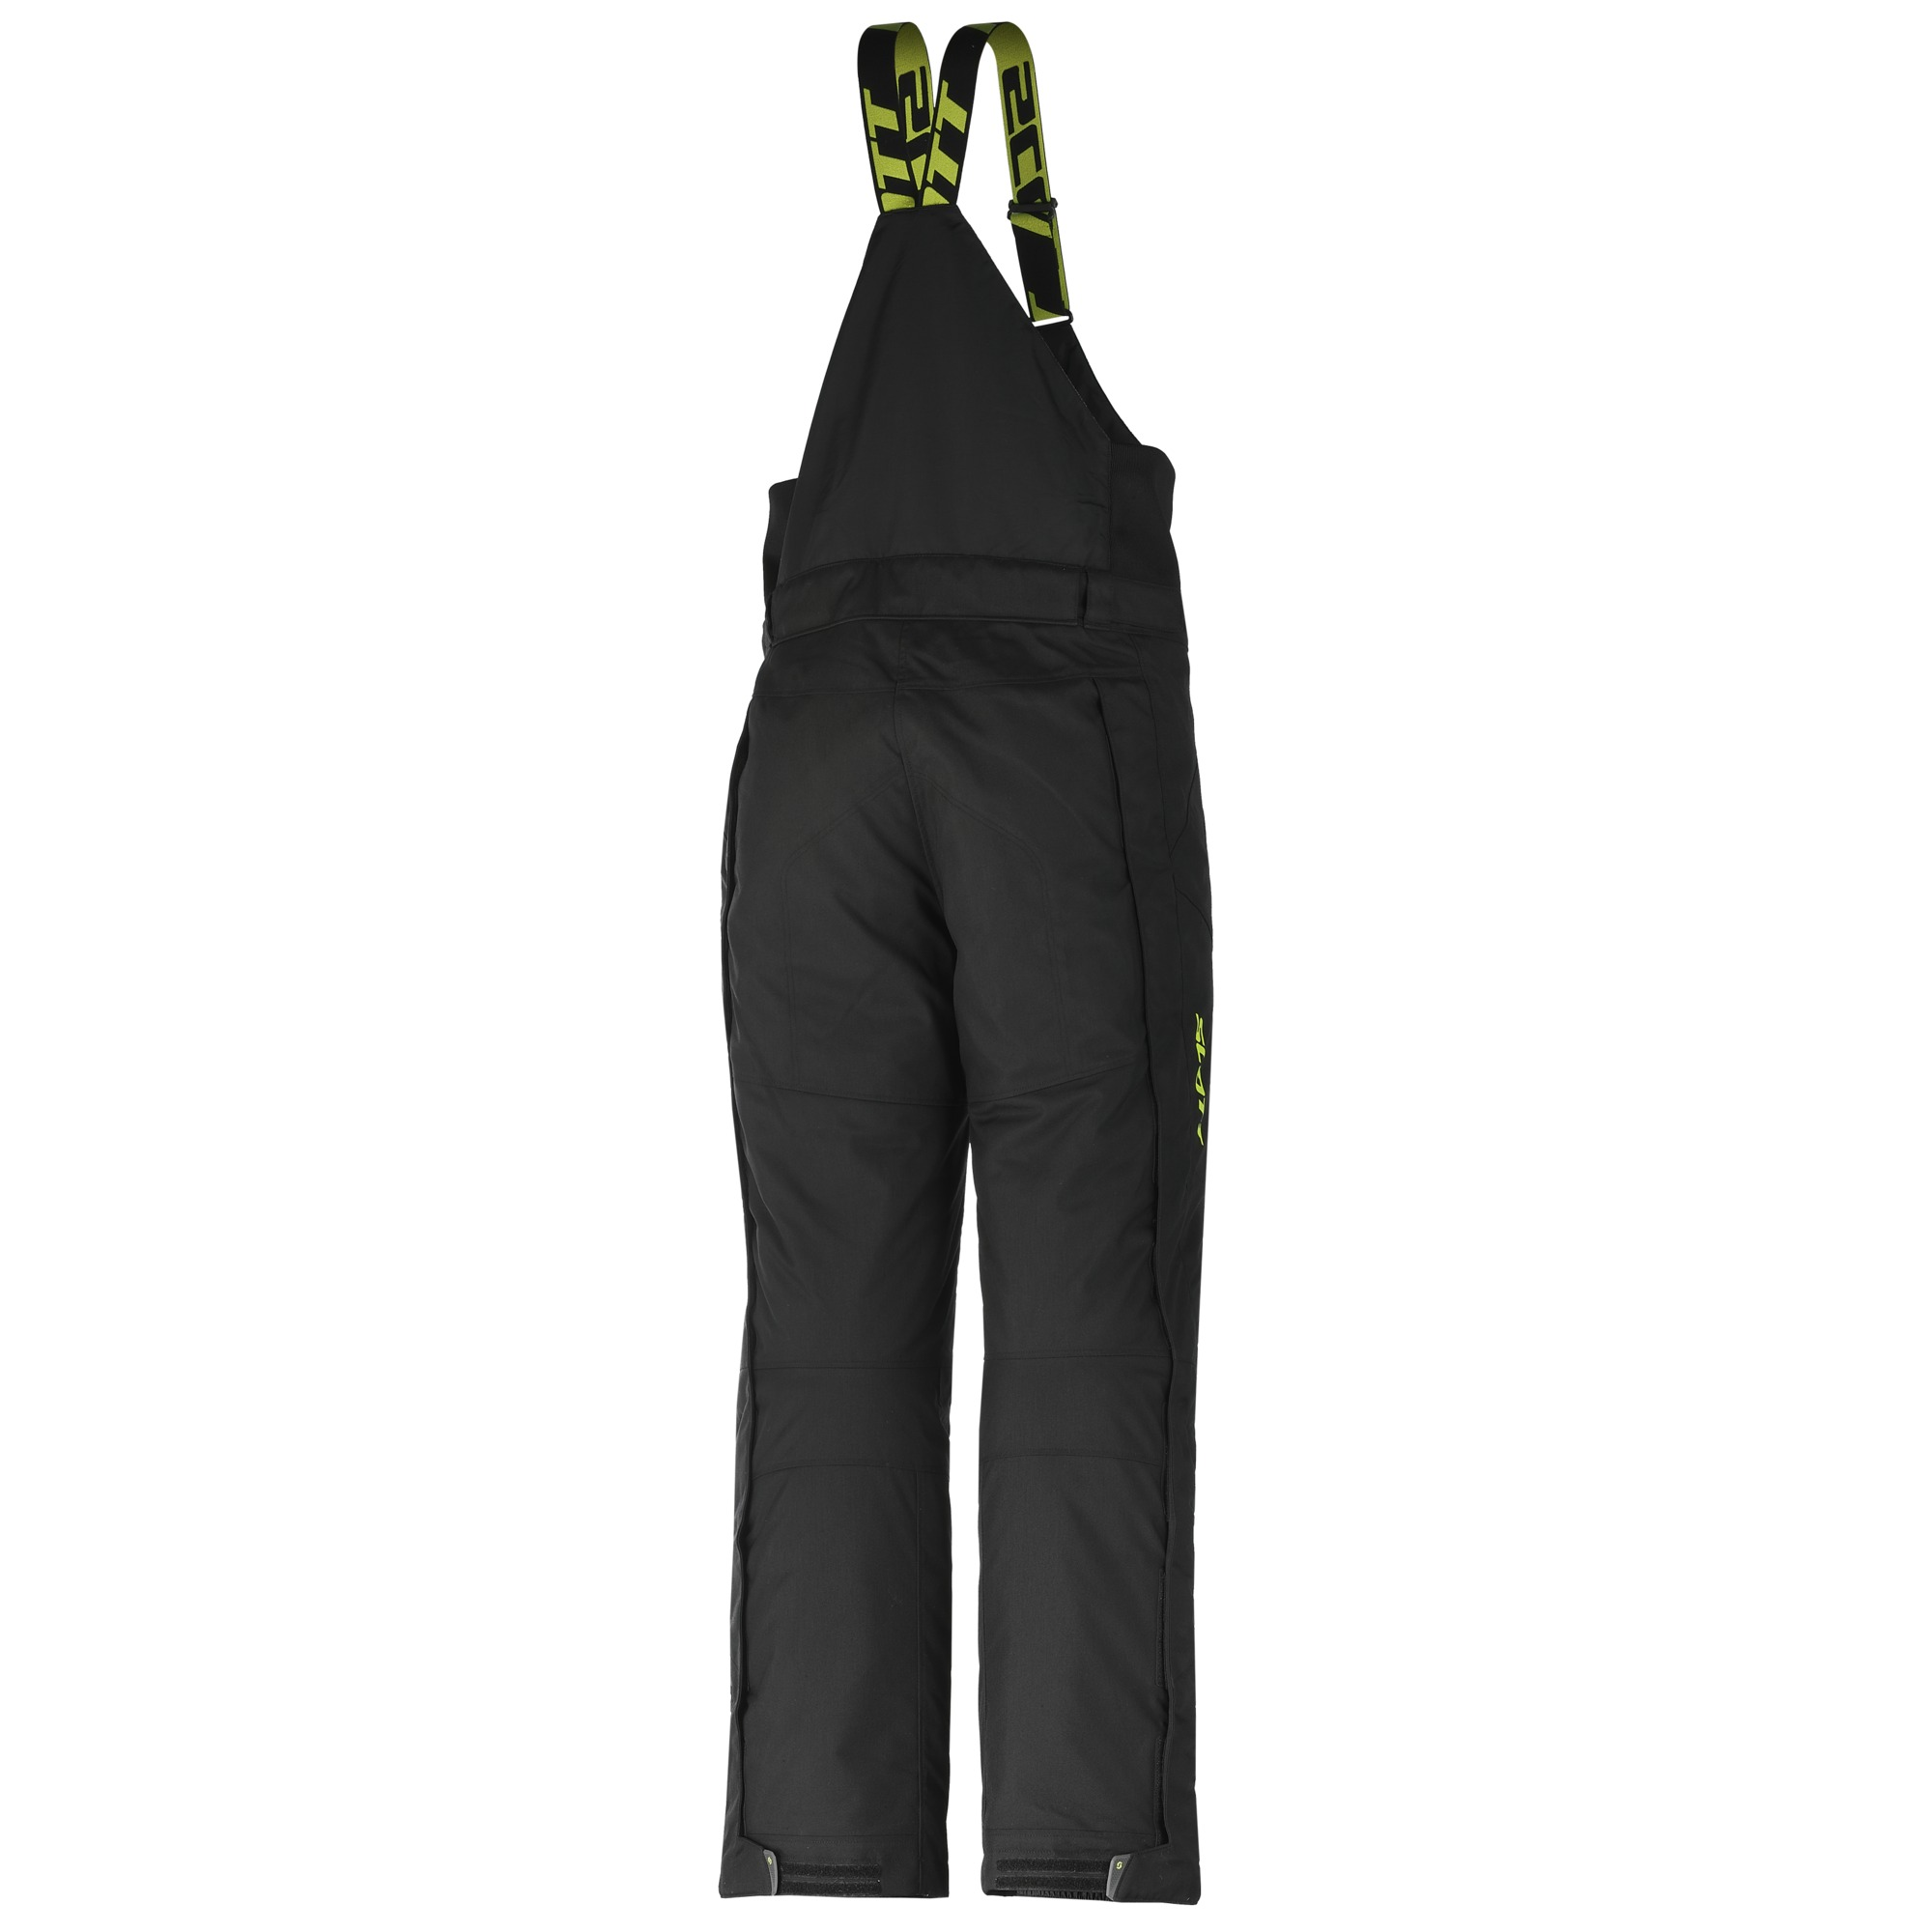 SCOTT Tundra DP Pant